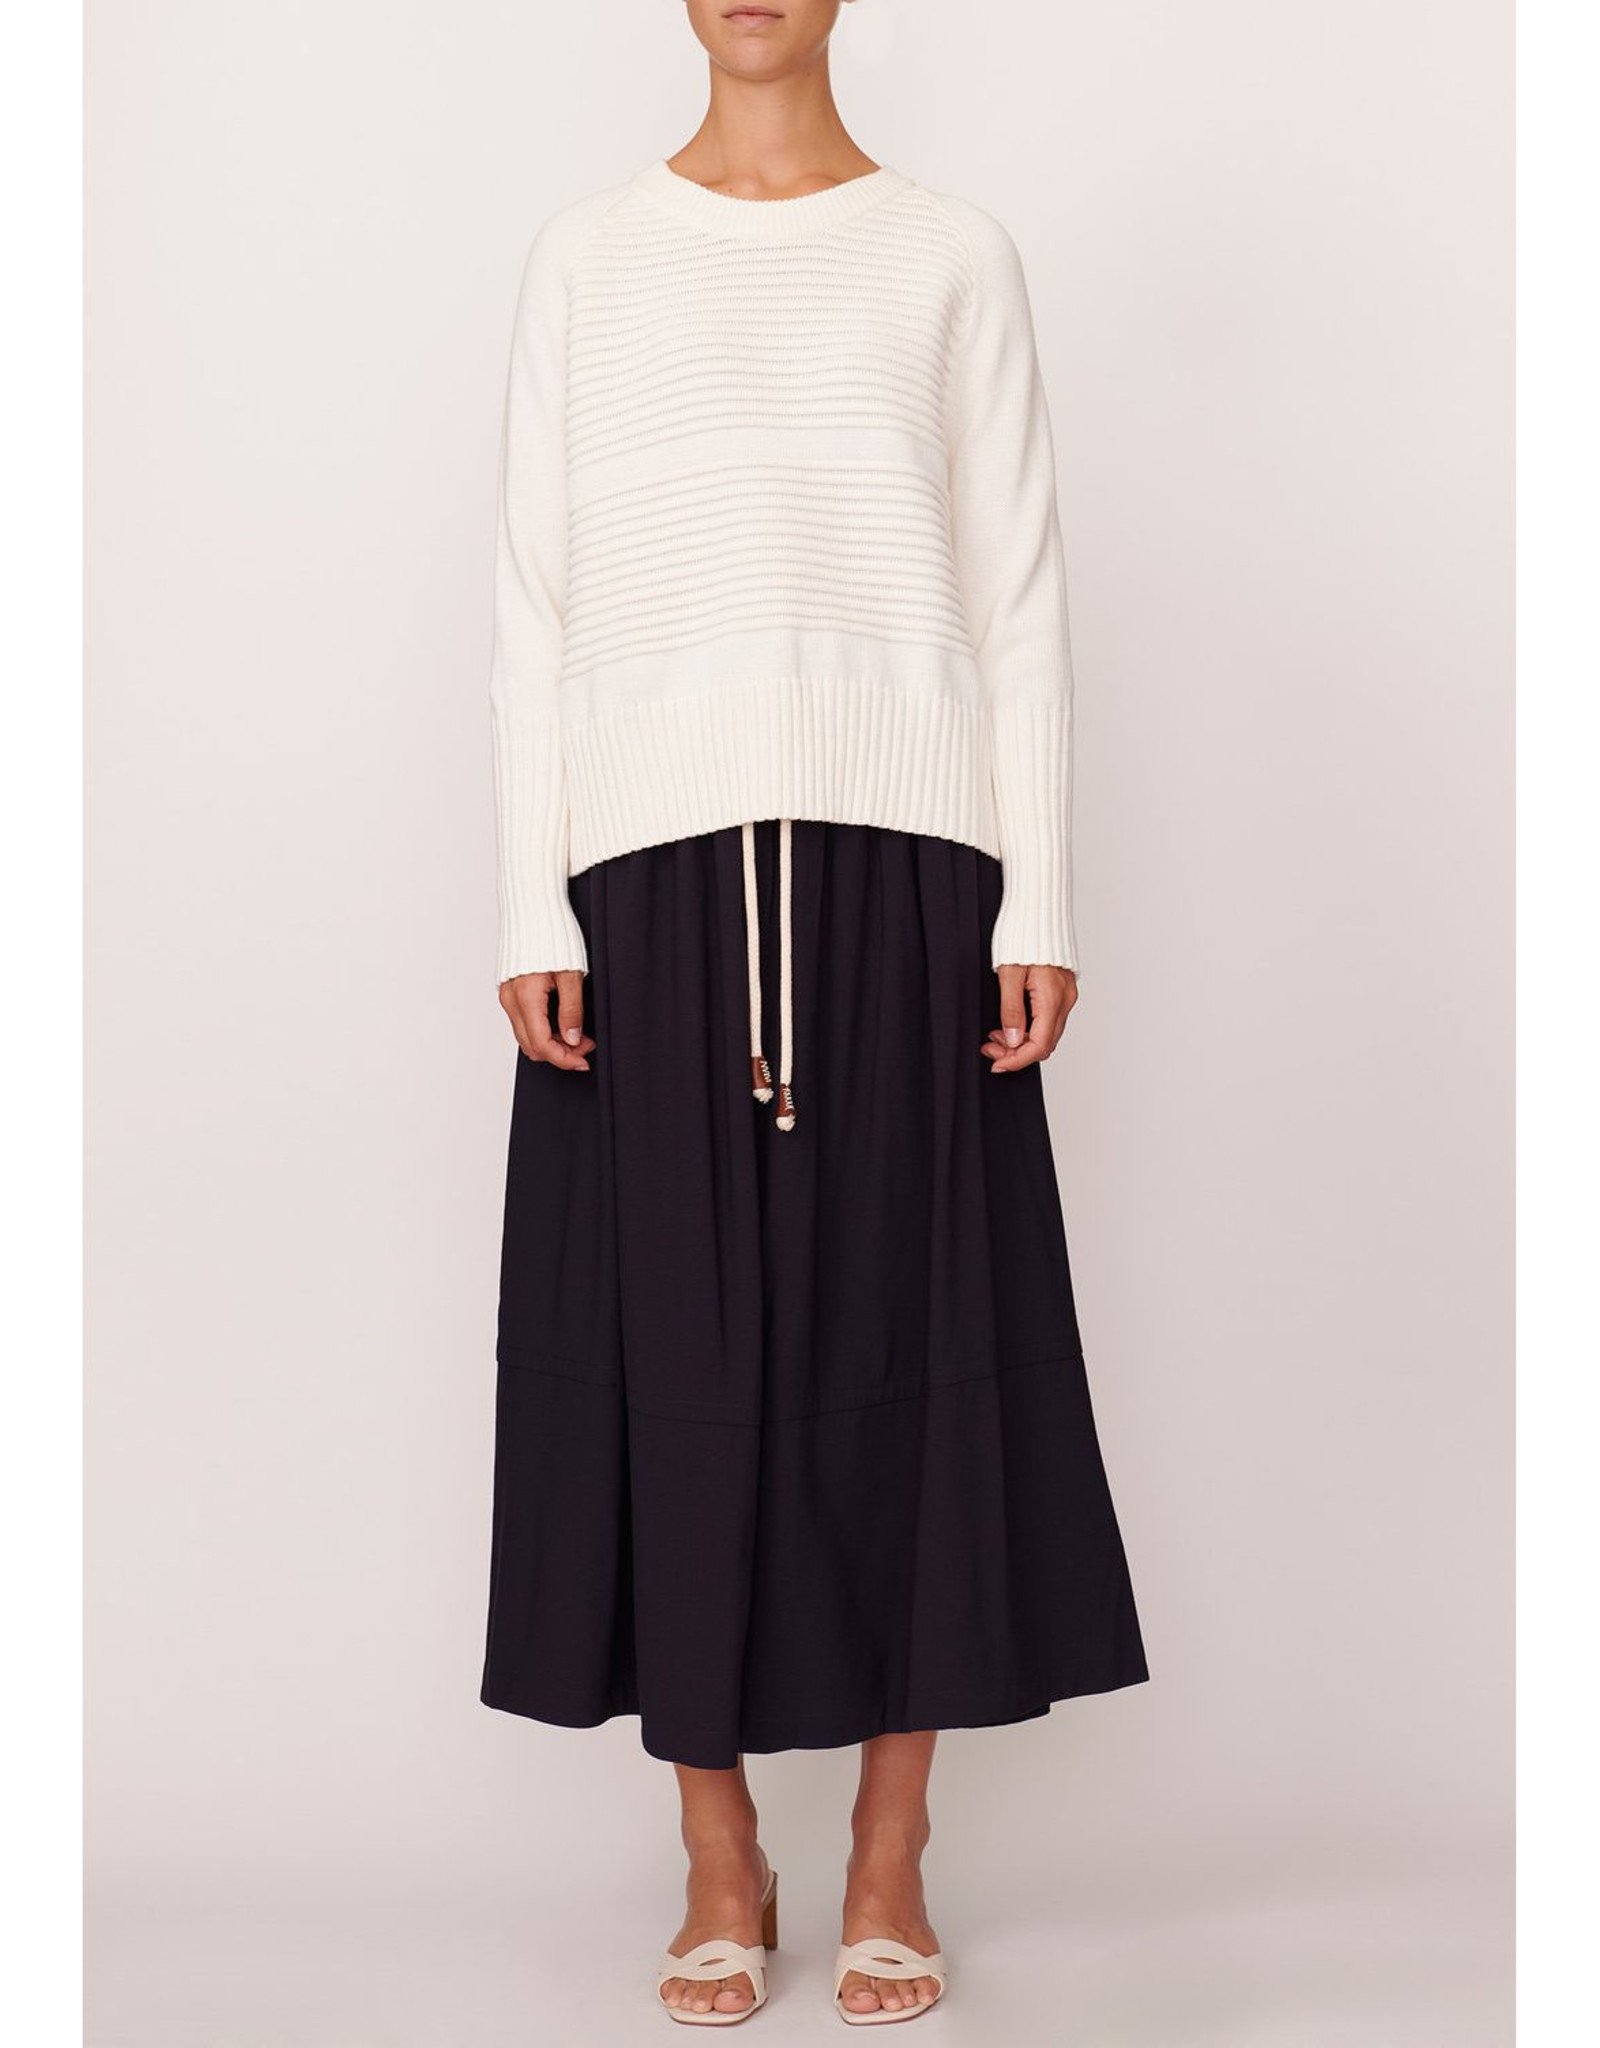 SALE - POL AERIAL RIBBED KNIT WHITE